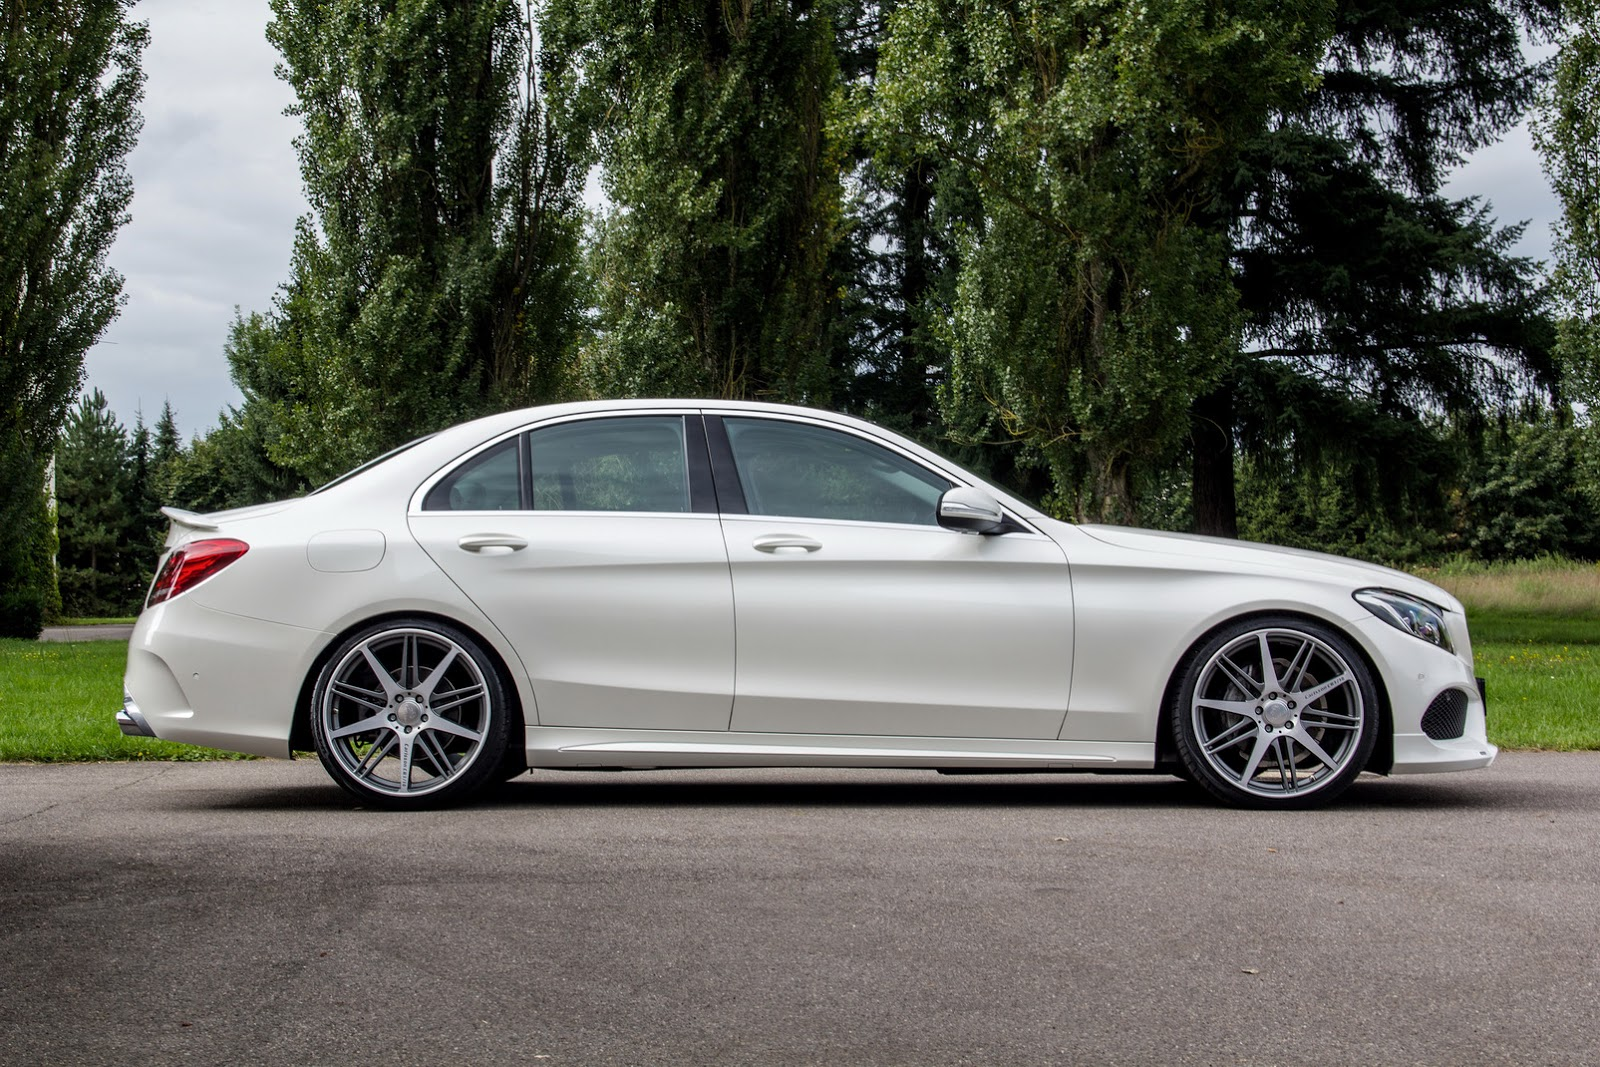 carlsson 39 s take on new mercedes benz c class amg sport carscoops. Black Bedroom Furniture Sets. Home Design Ideas